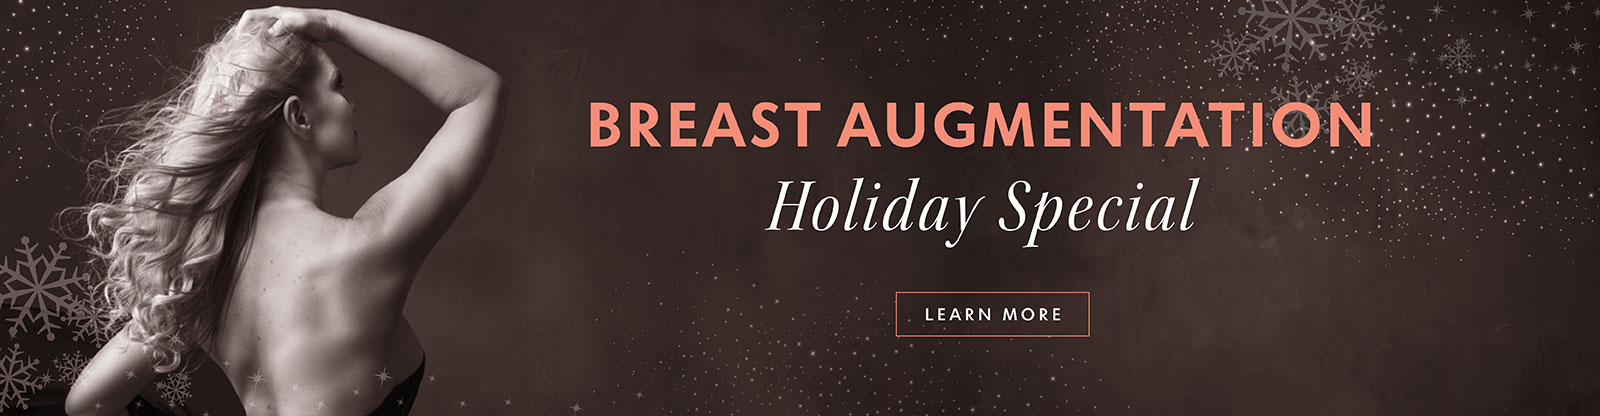 Breast Augmentation Holiday Special